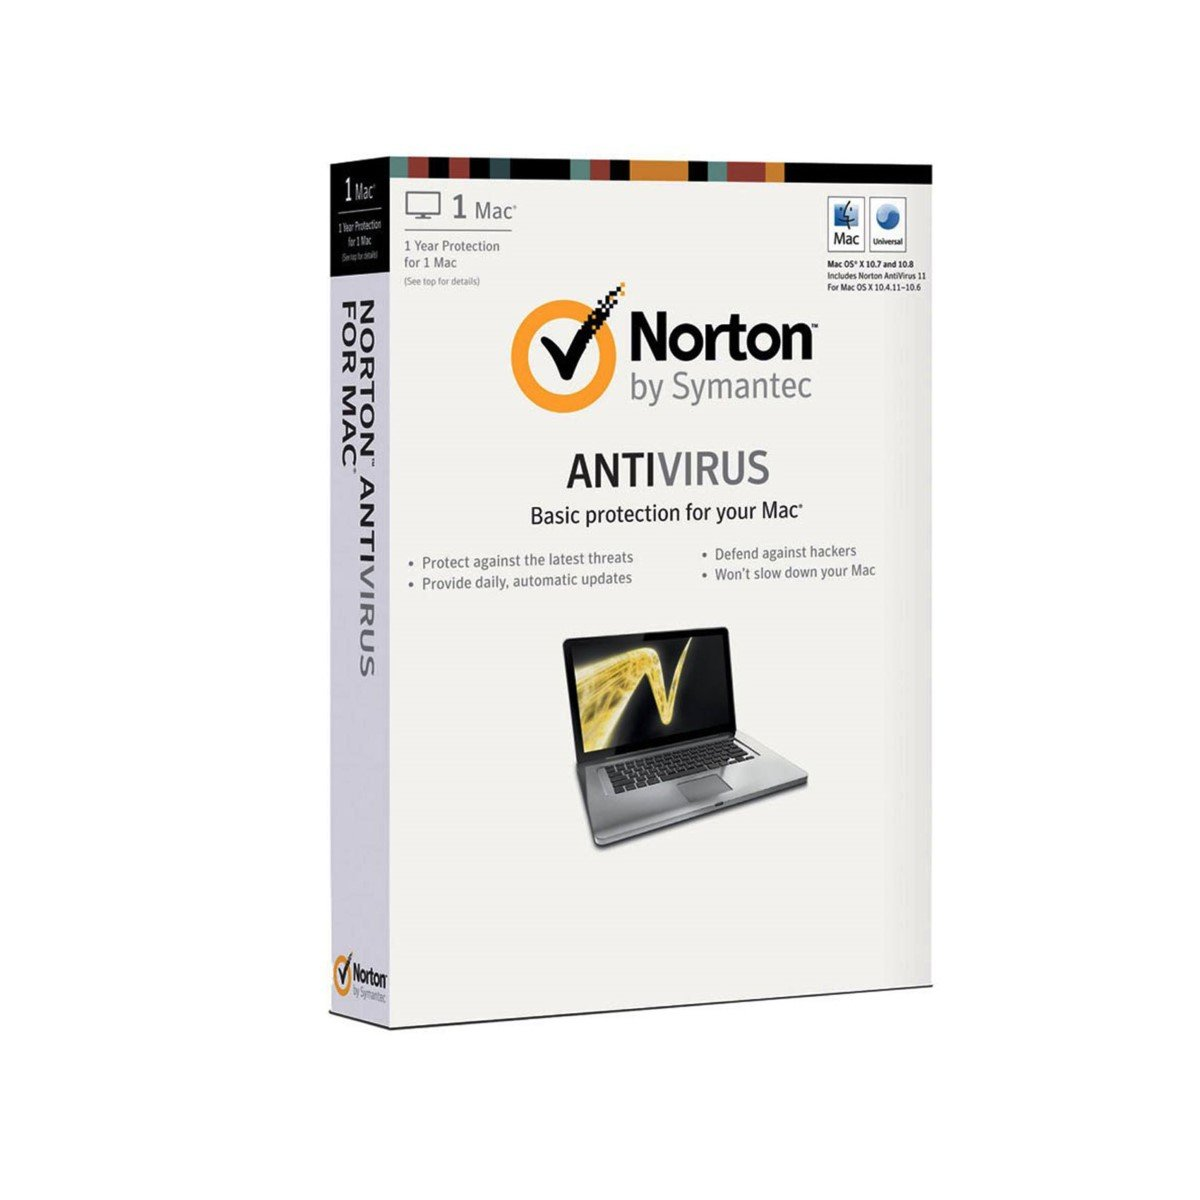 Norton Antivirus for Mac [Old Version]